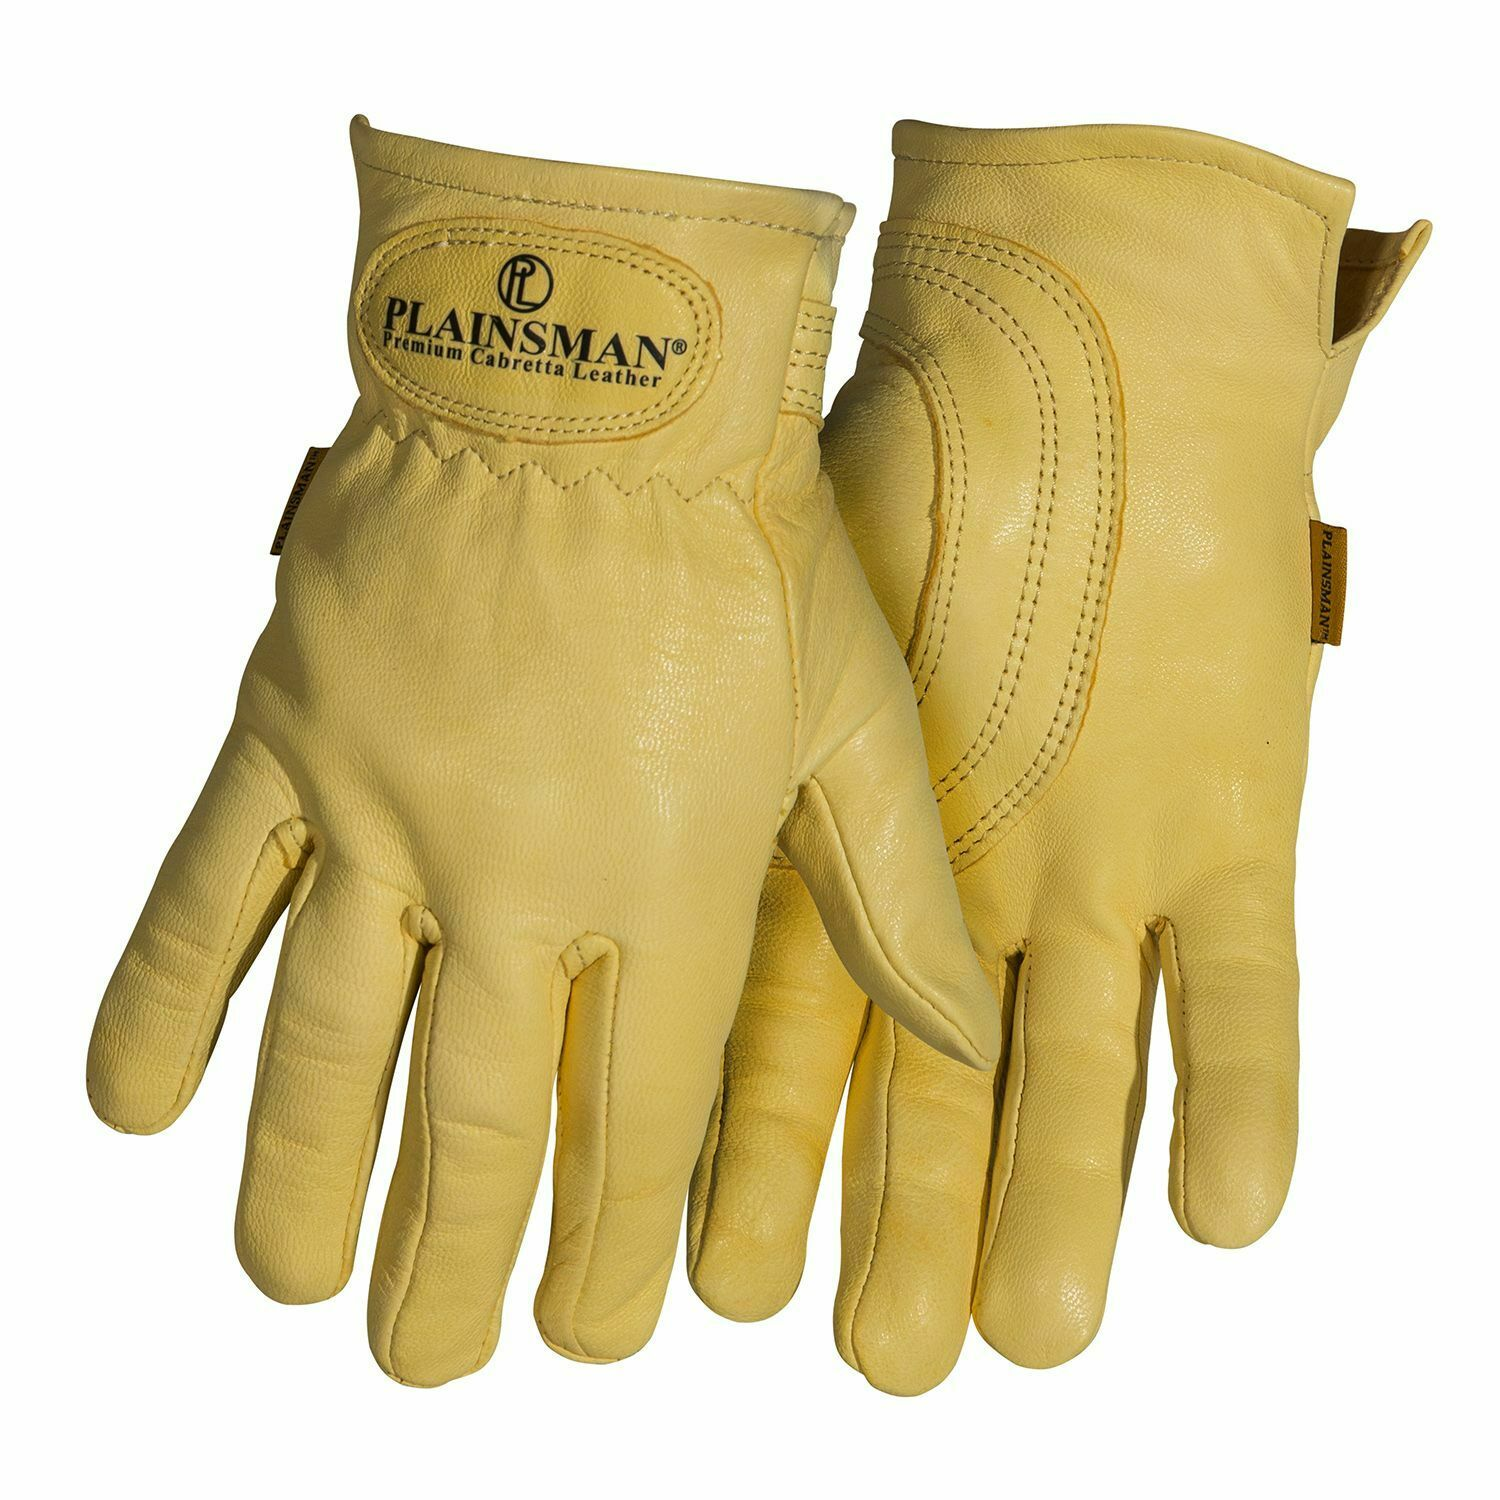 (1) One Pair PLAINSMAN Premium Cabretta Leather Gloves from Wholesale Carton NEW